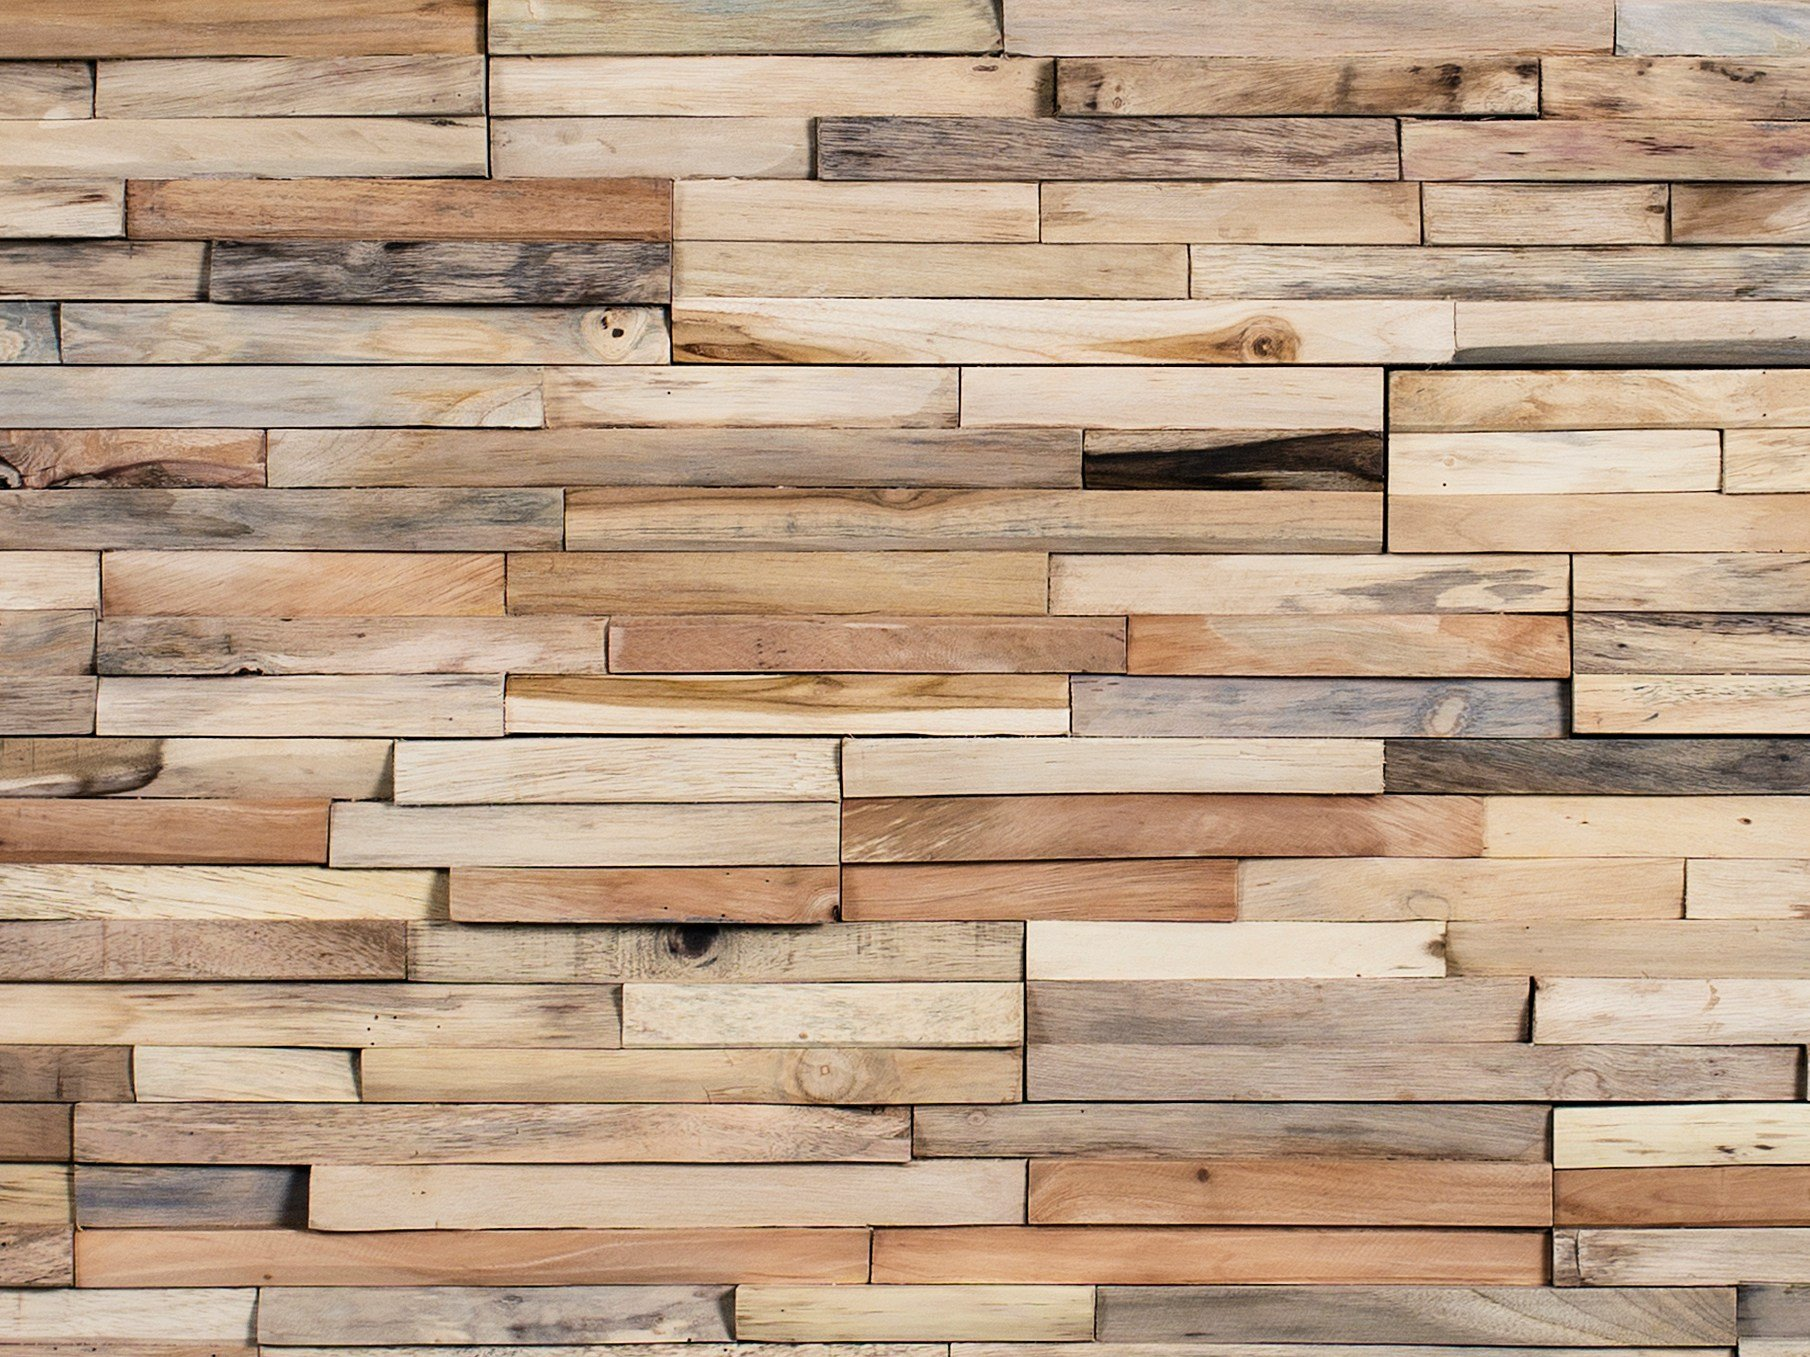 Wooden 3d Wall Cladding Mercury By Wonderwall Studios